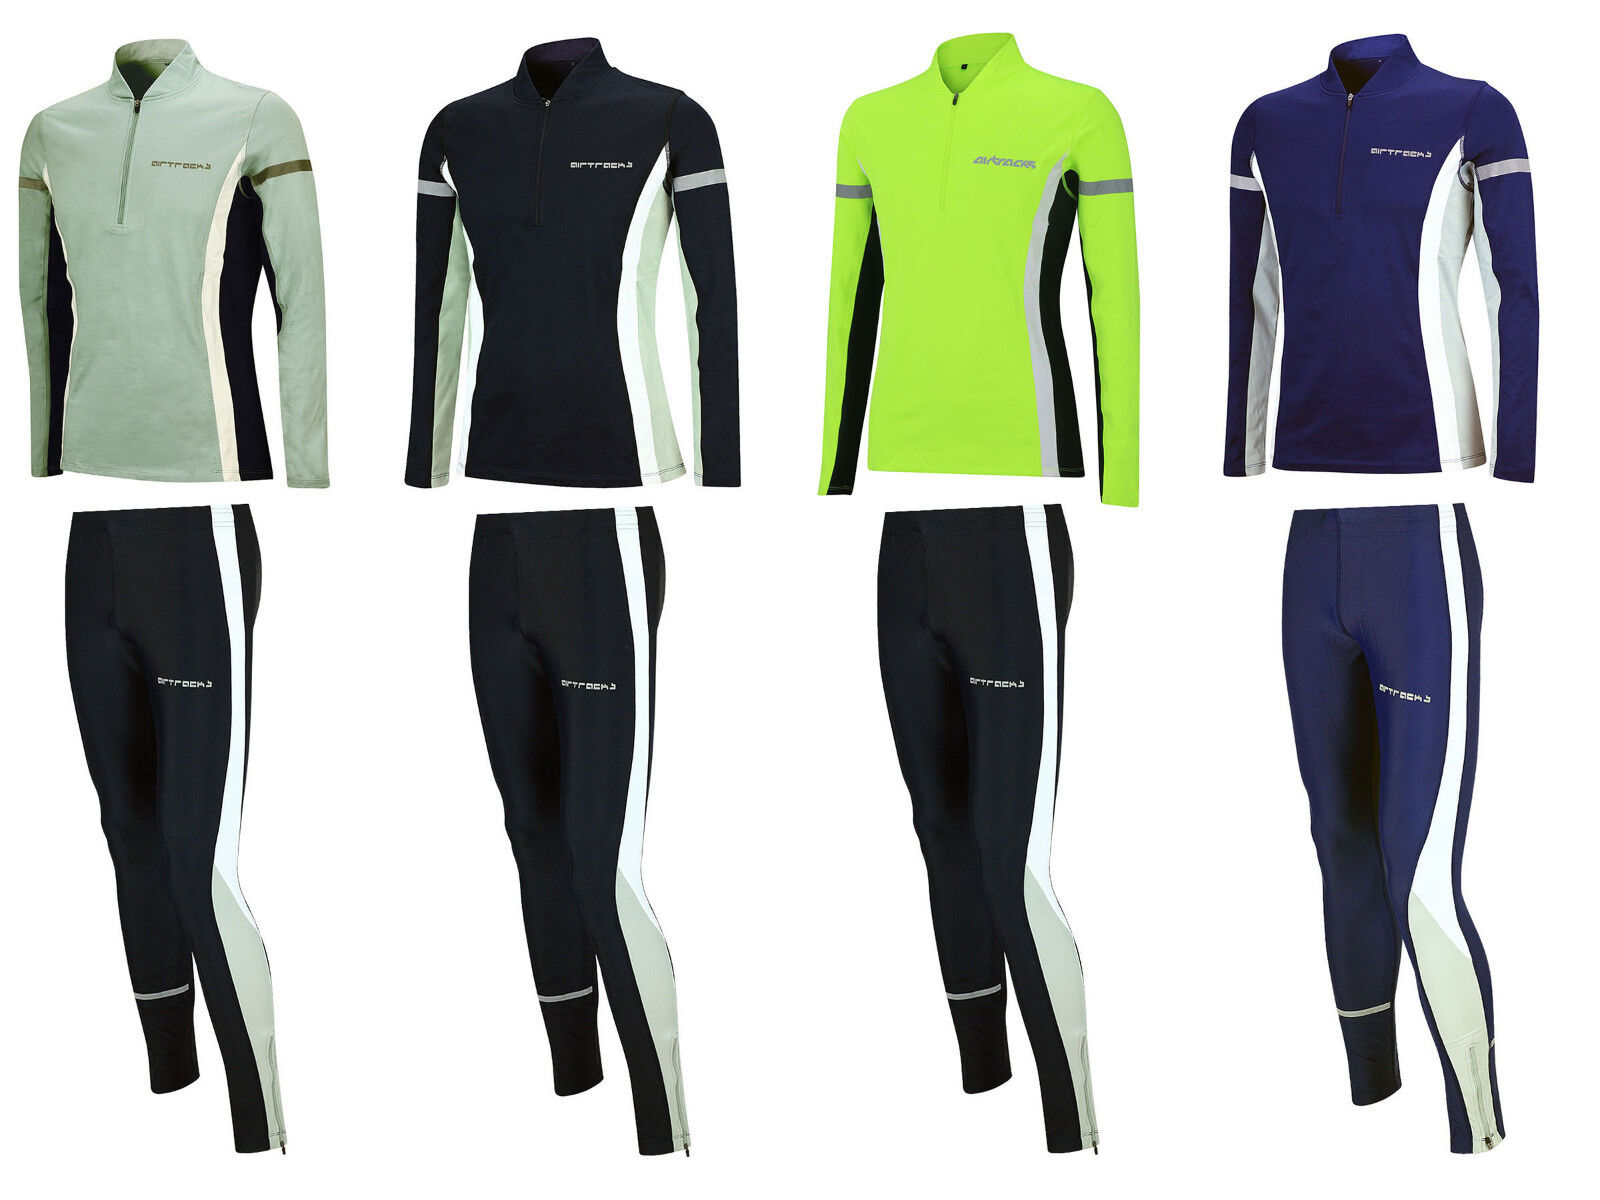 Airtracks invierno Funktions  laufset Thermo corre camisa larga + pantalones tight Lang   salida de fábrica